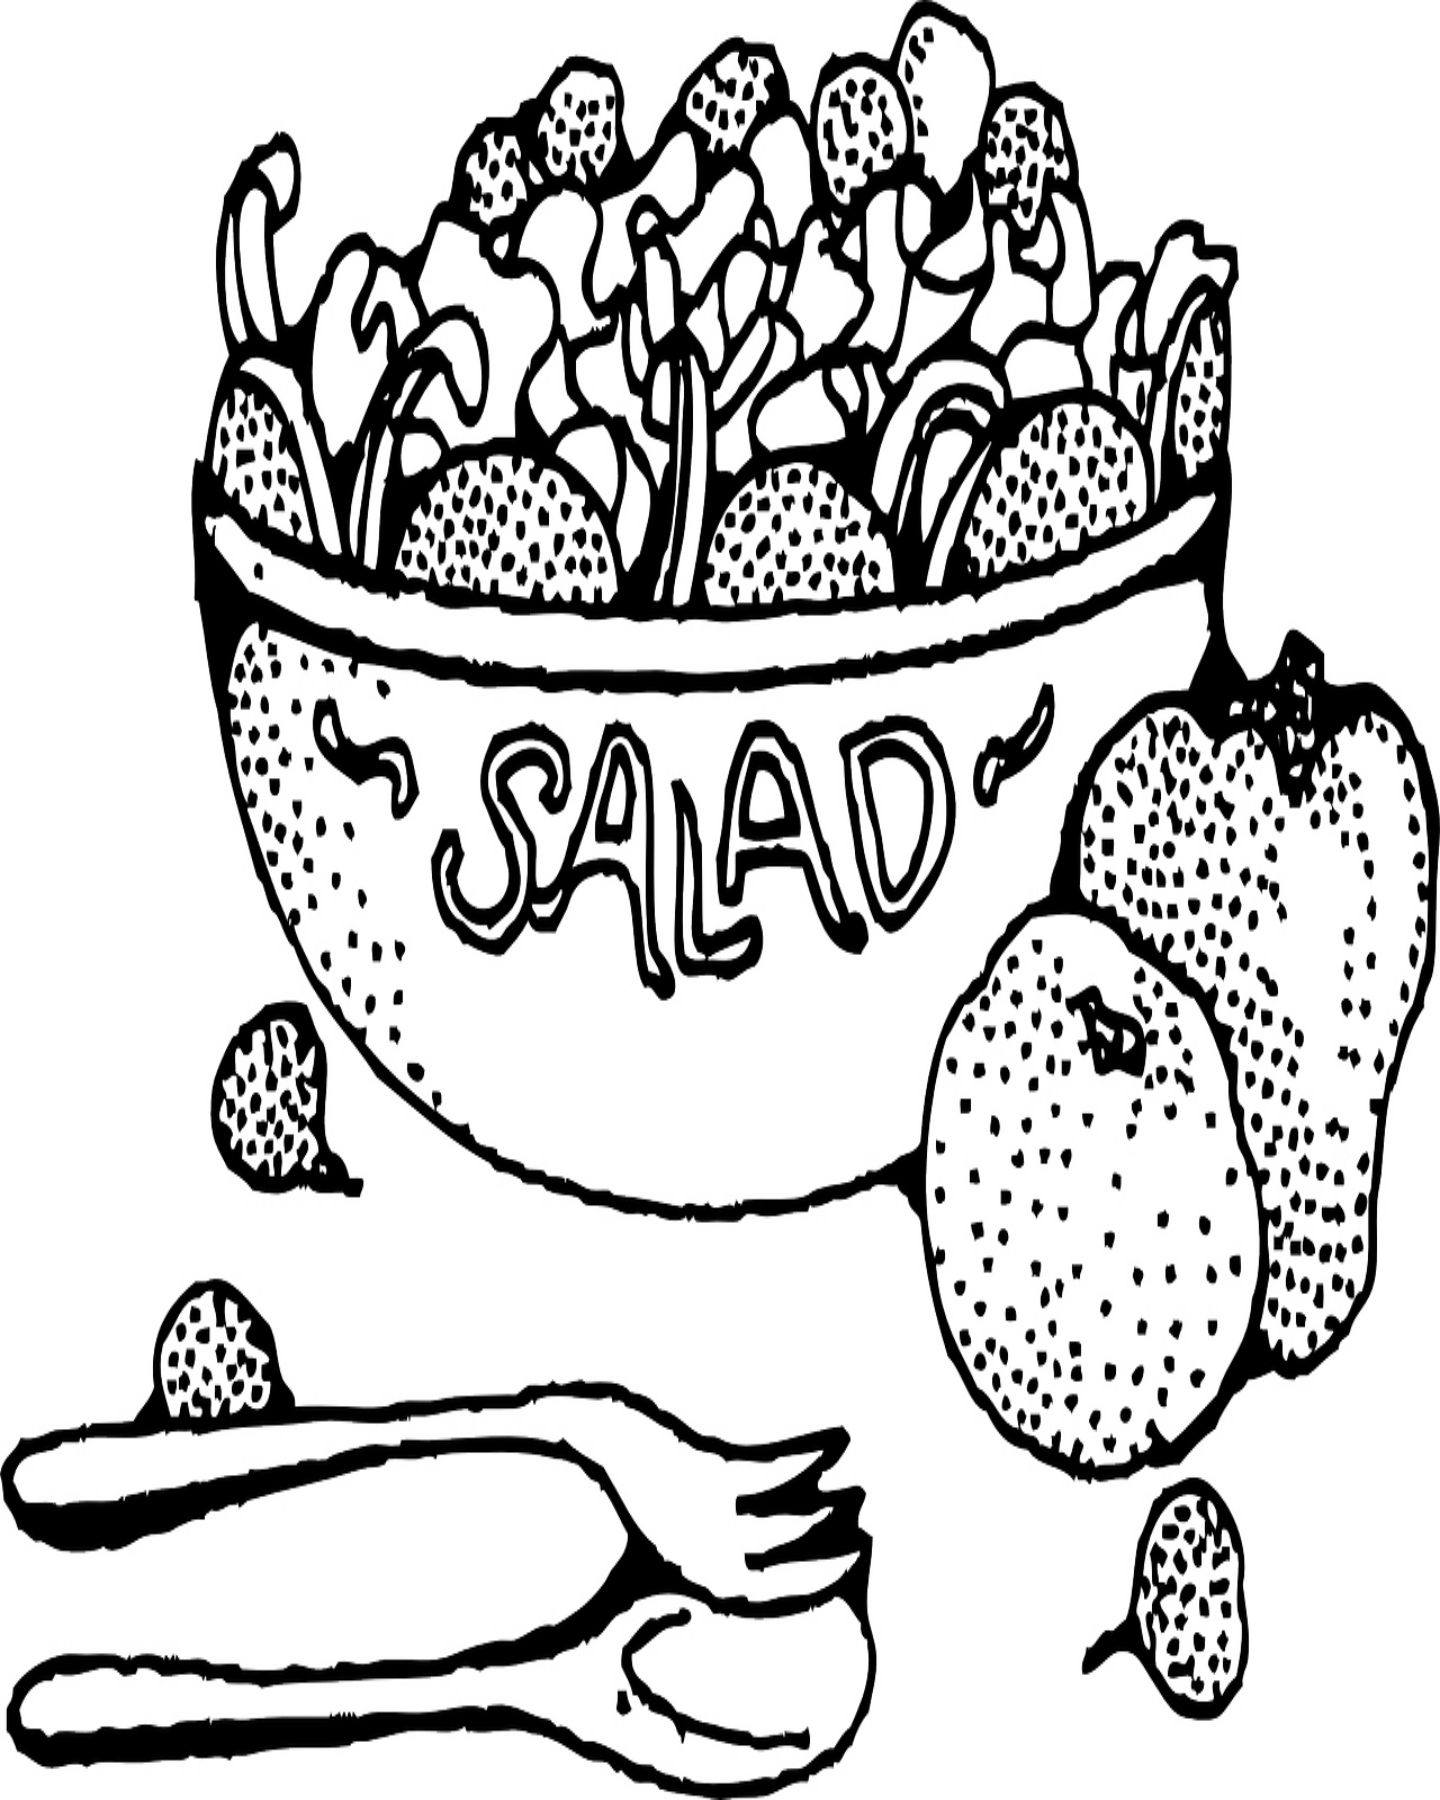 Fruit bowl coloring pictures - Free Printable Fruit Salad Bowl Coloring Page